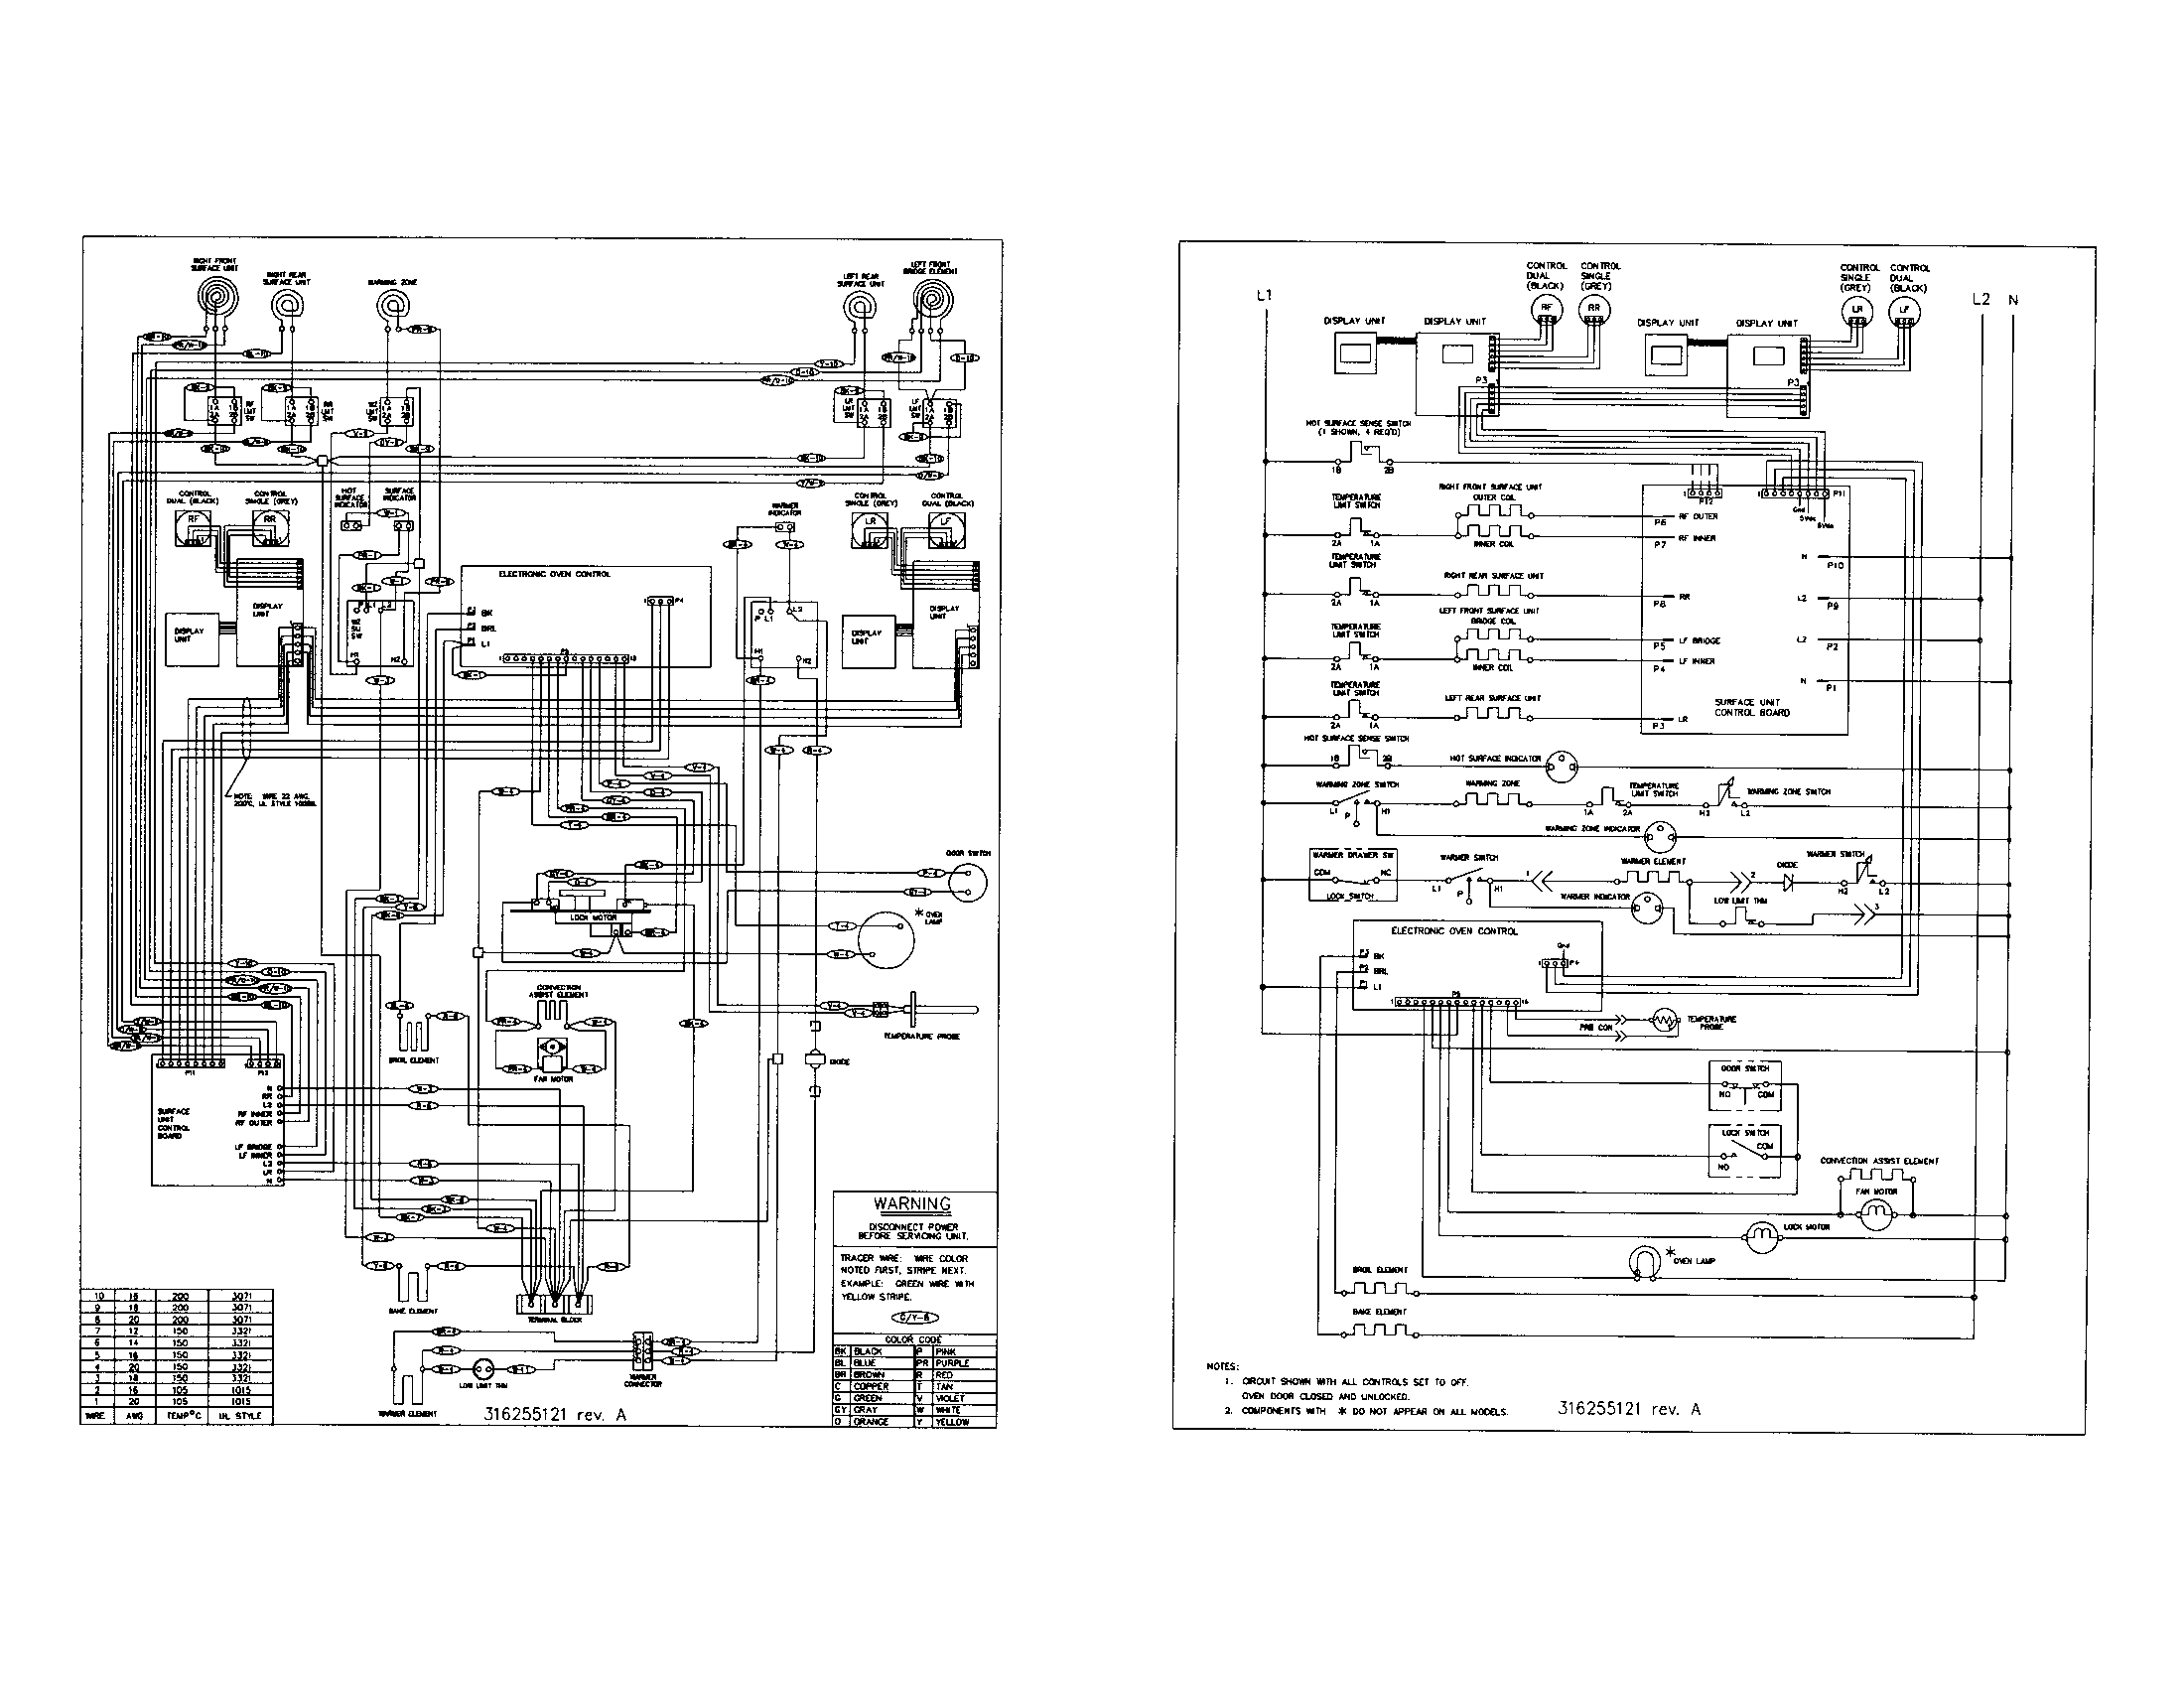 wiring diagram for frigidaire dryer the wiring diagram frigidaire gallery electric range schematic frigidaire wiring diagram